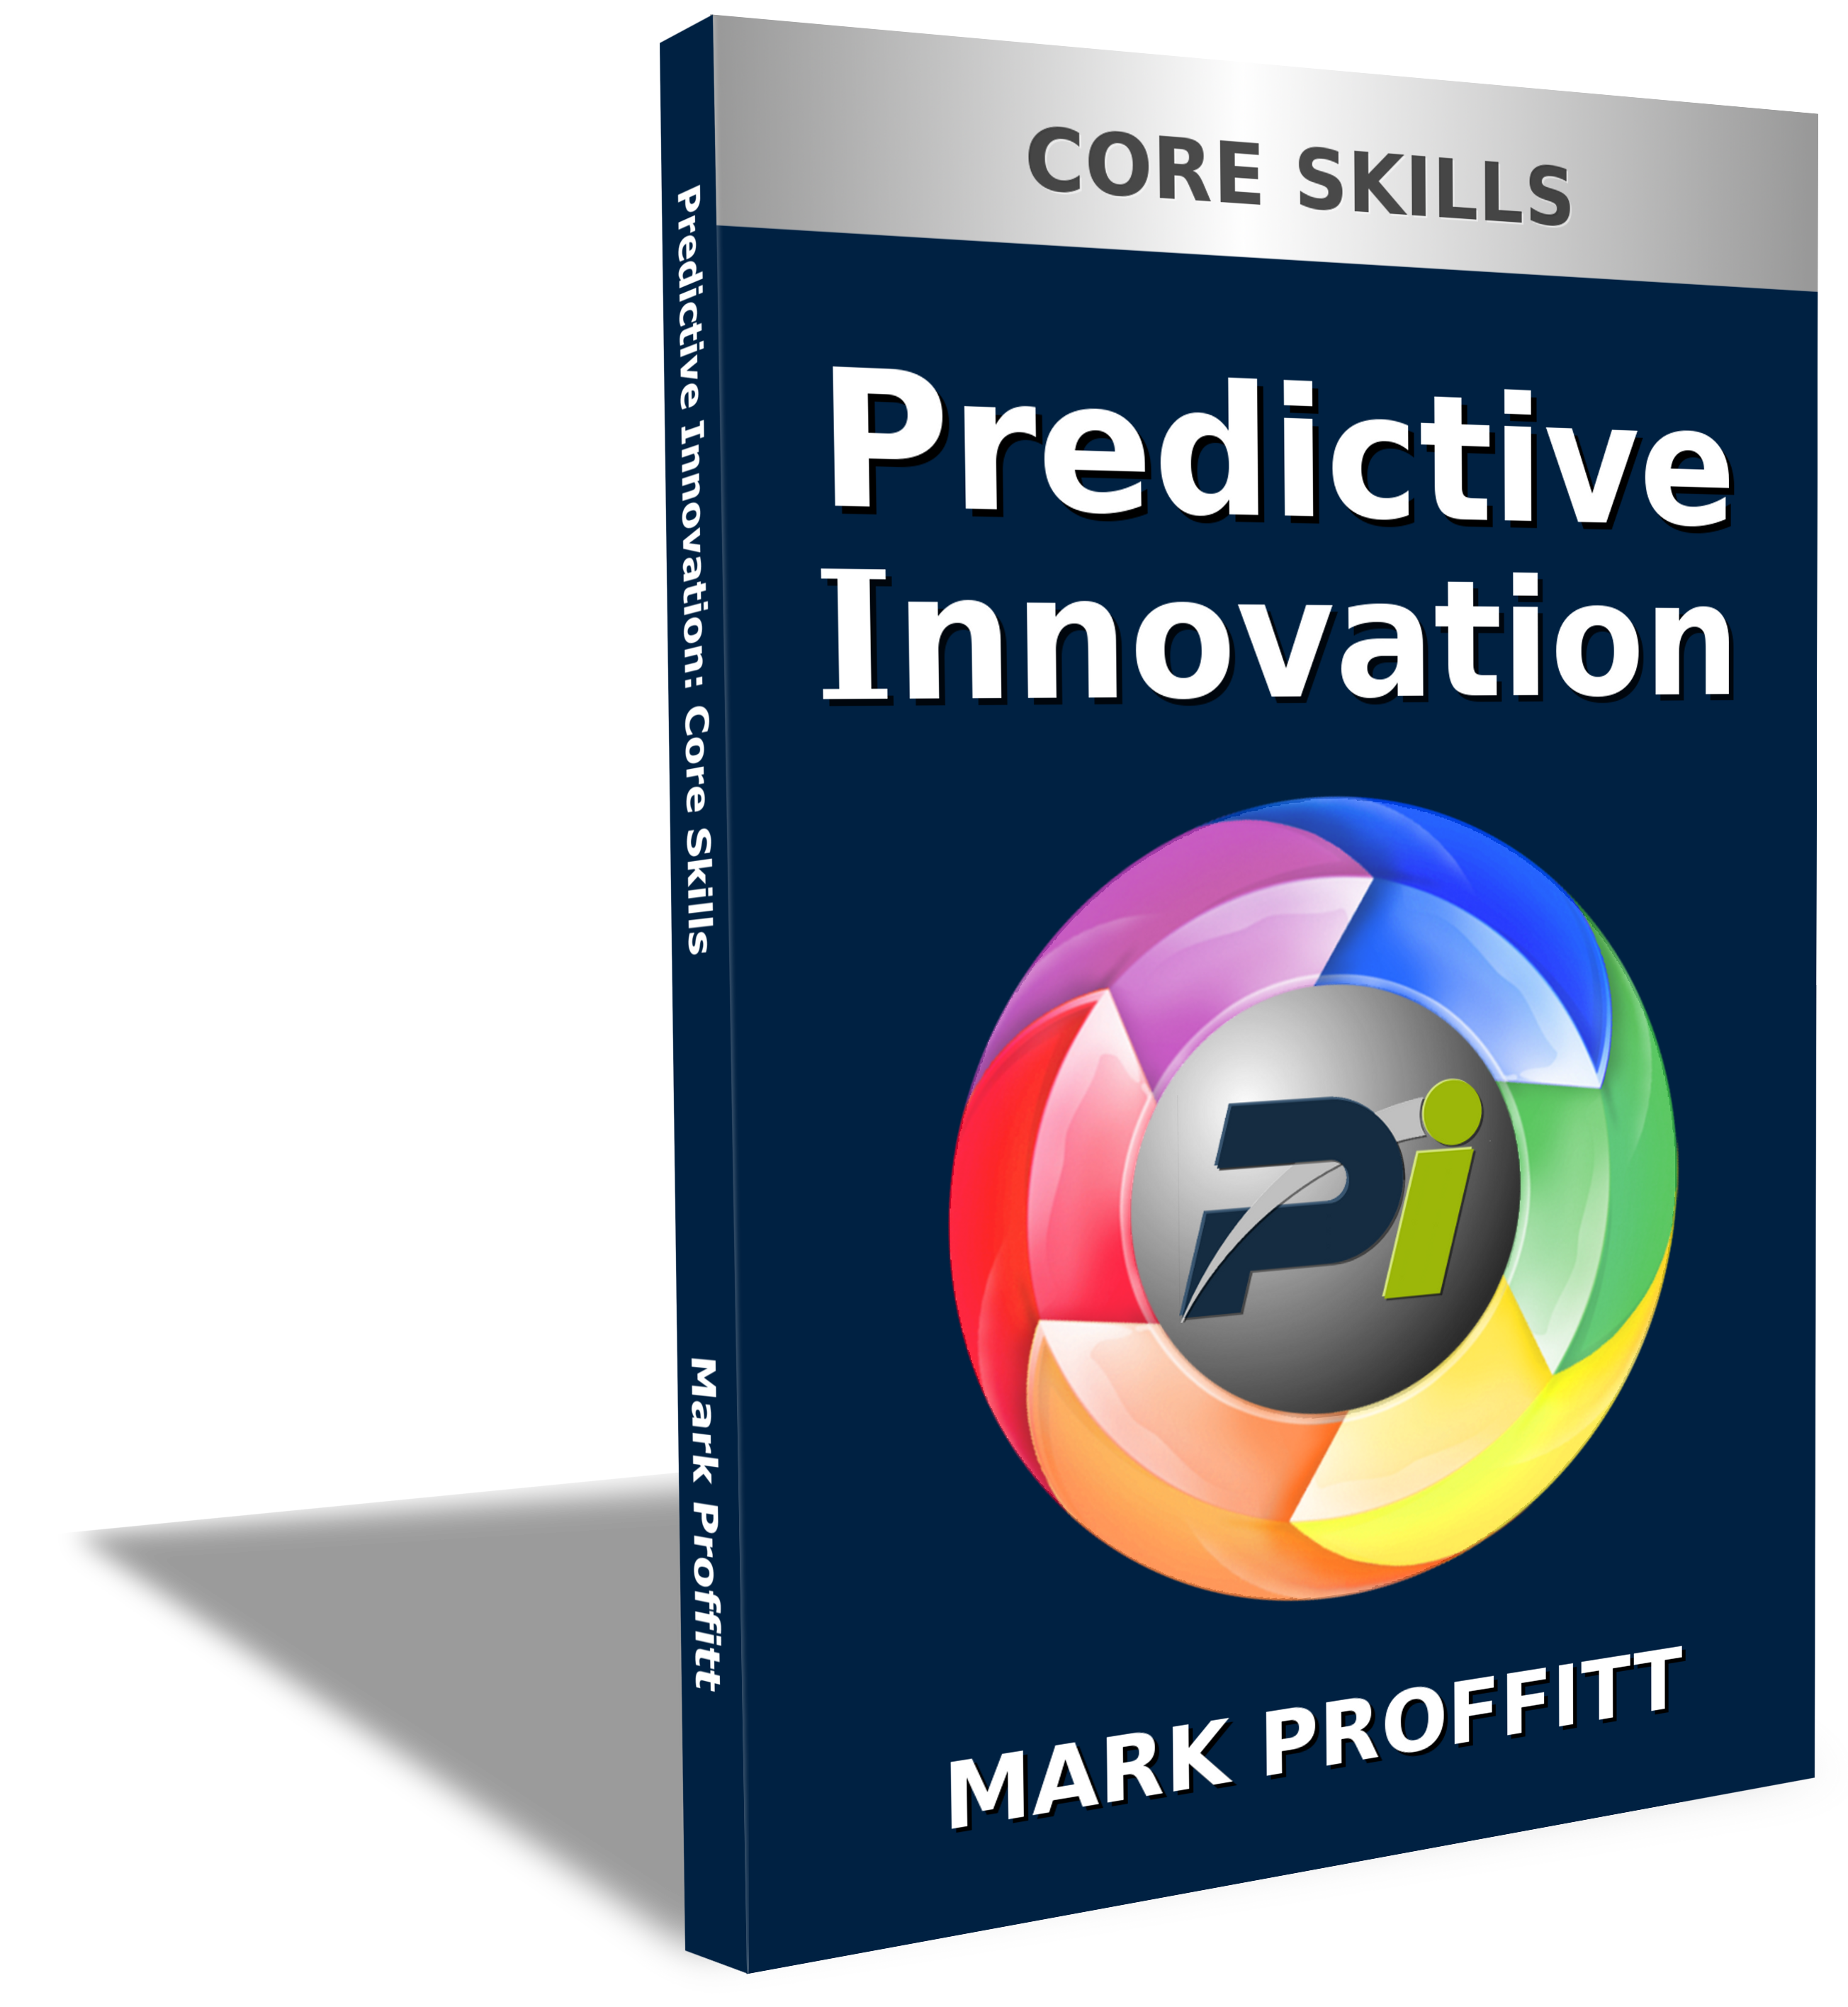 Predictive Innovation Core Skills